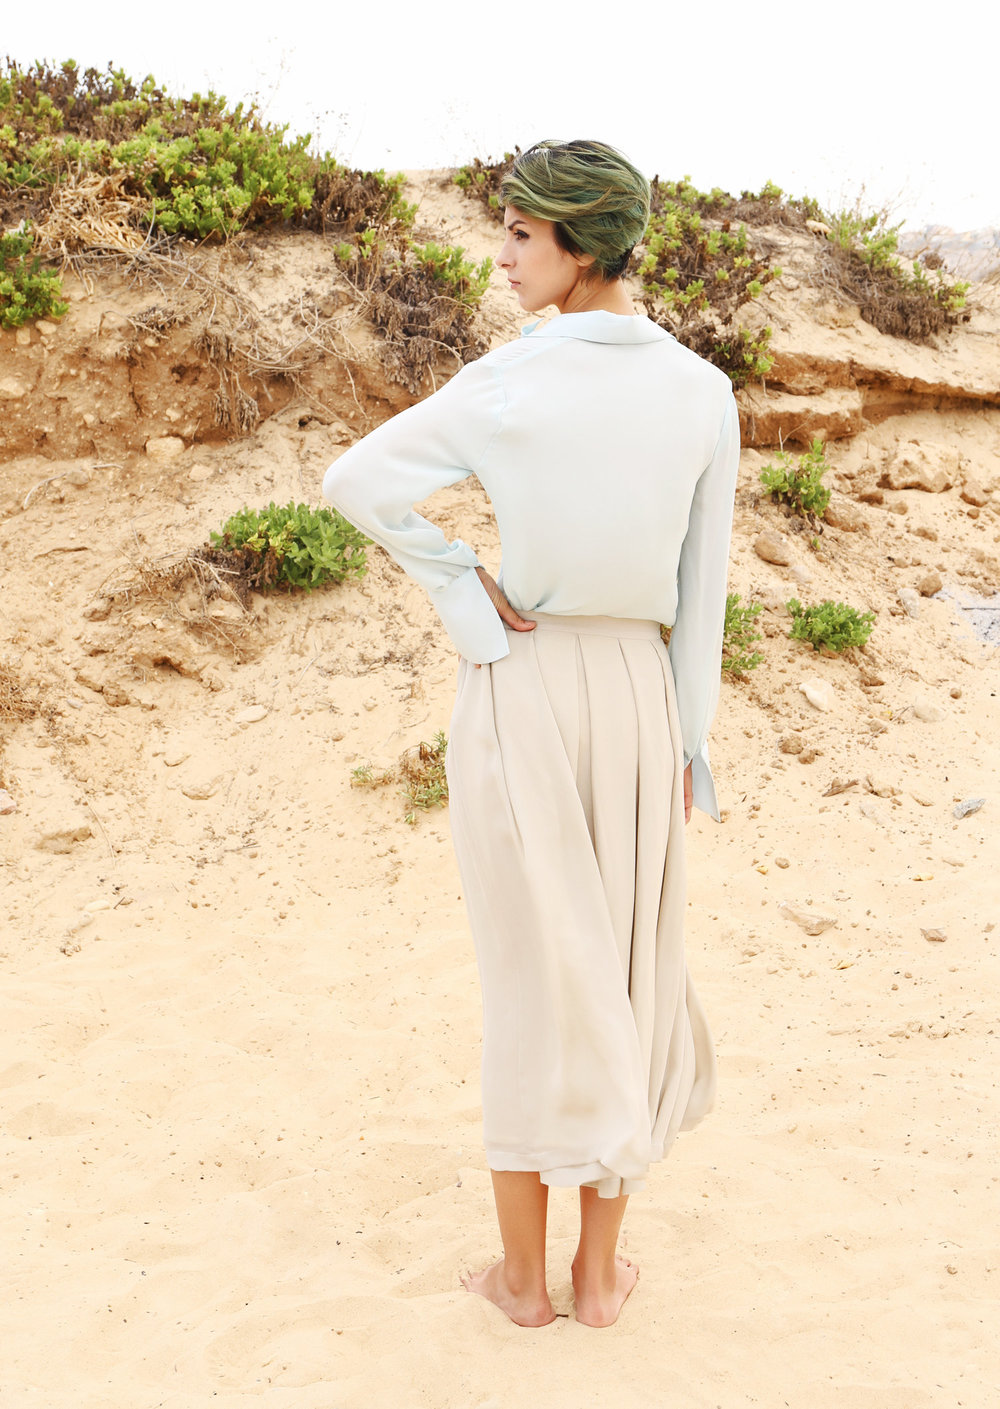 SOFT POWER - Perfect skirts usually come in different lengths and always in pure silk